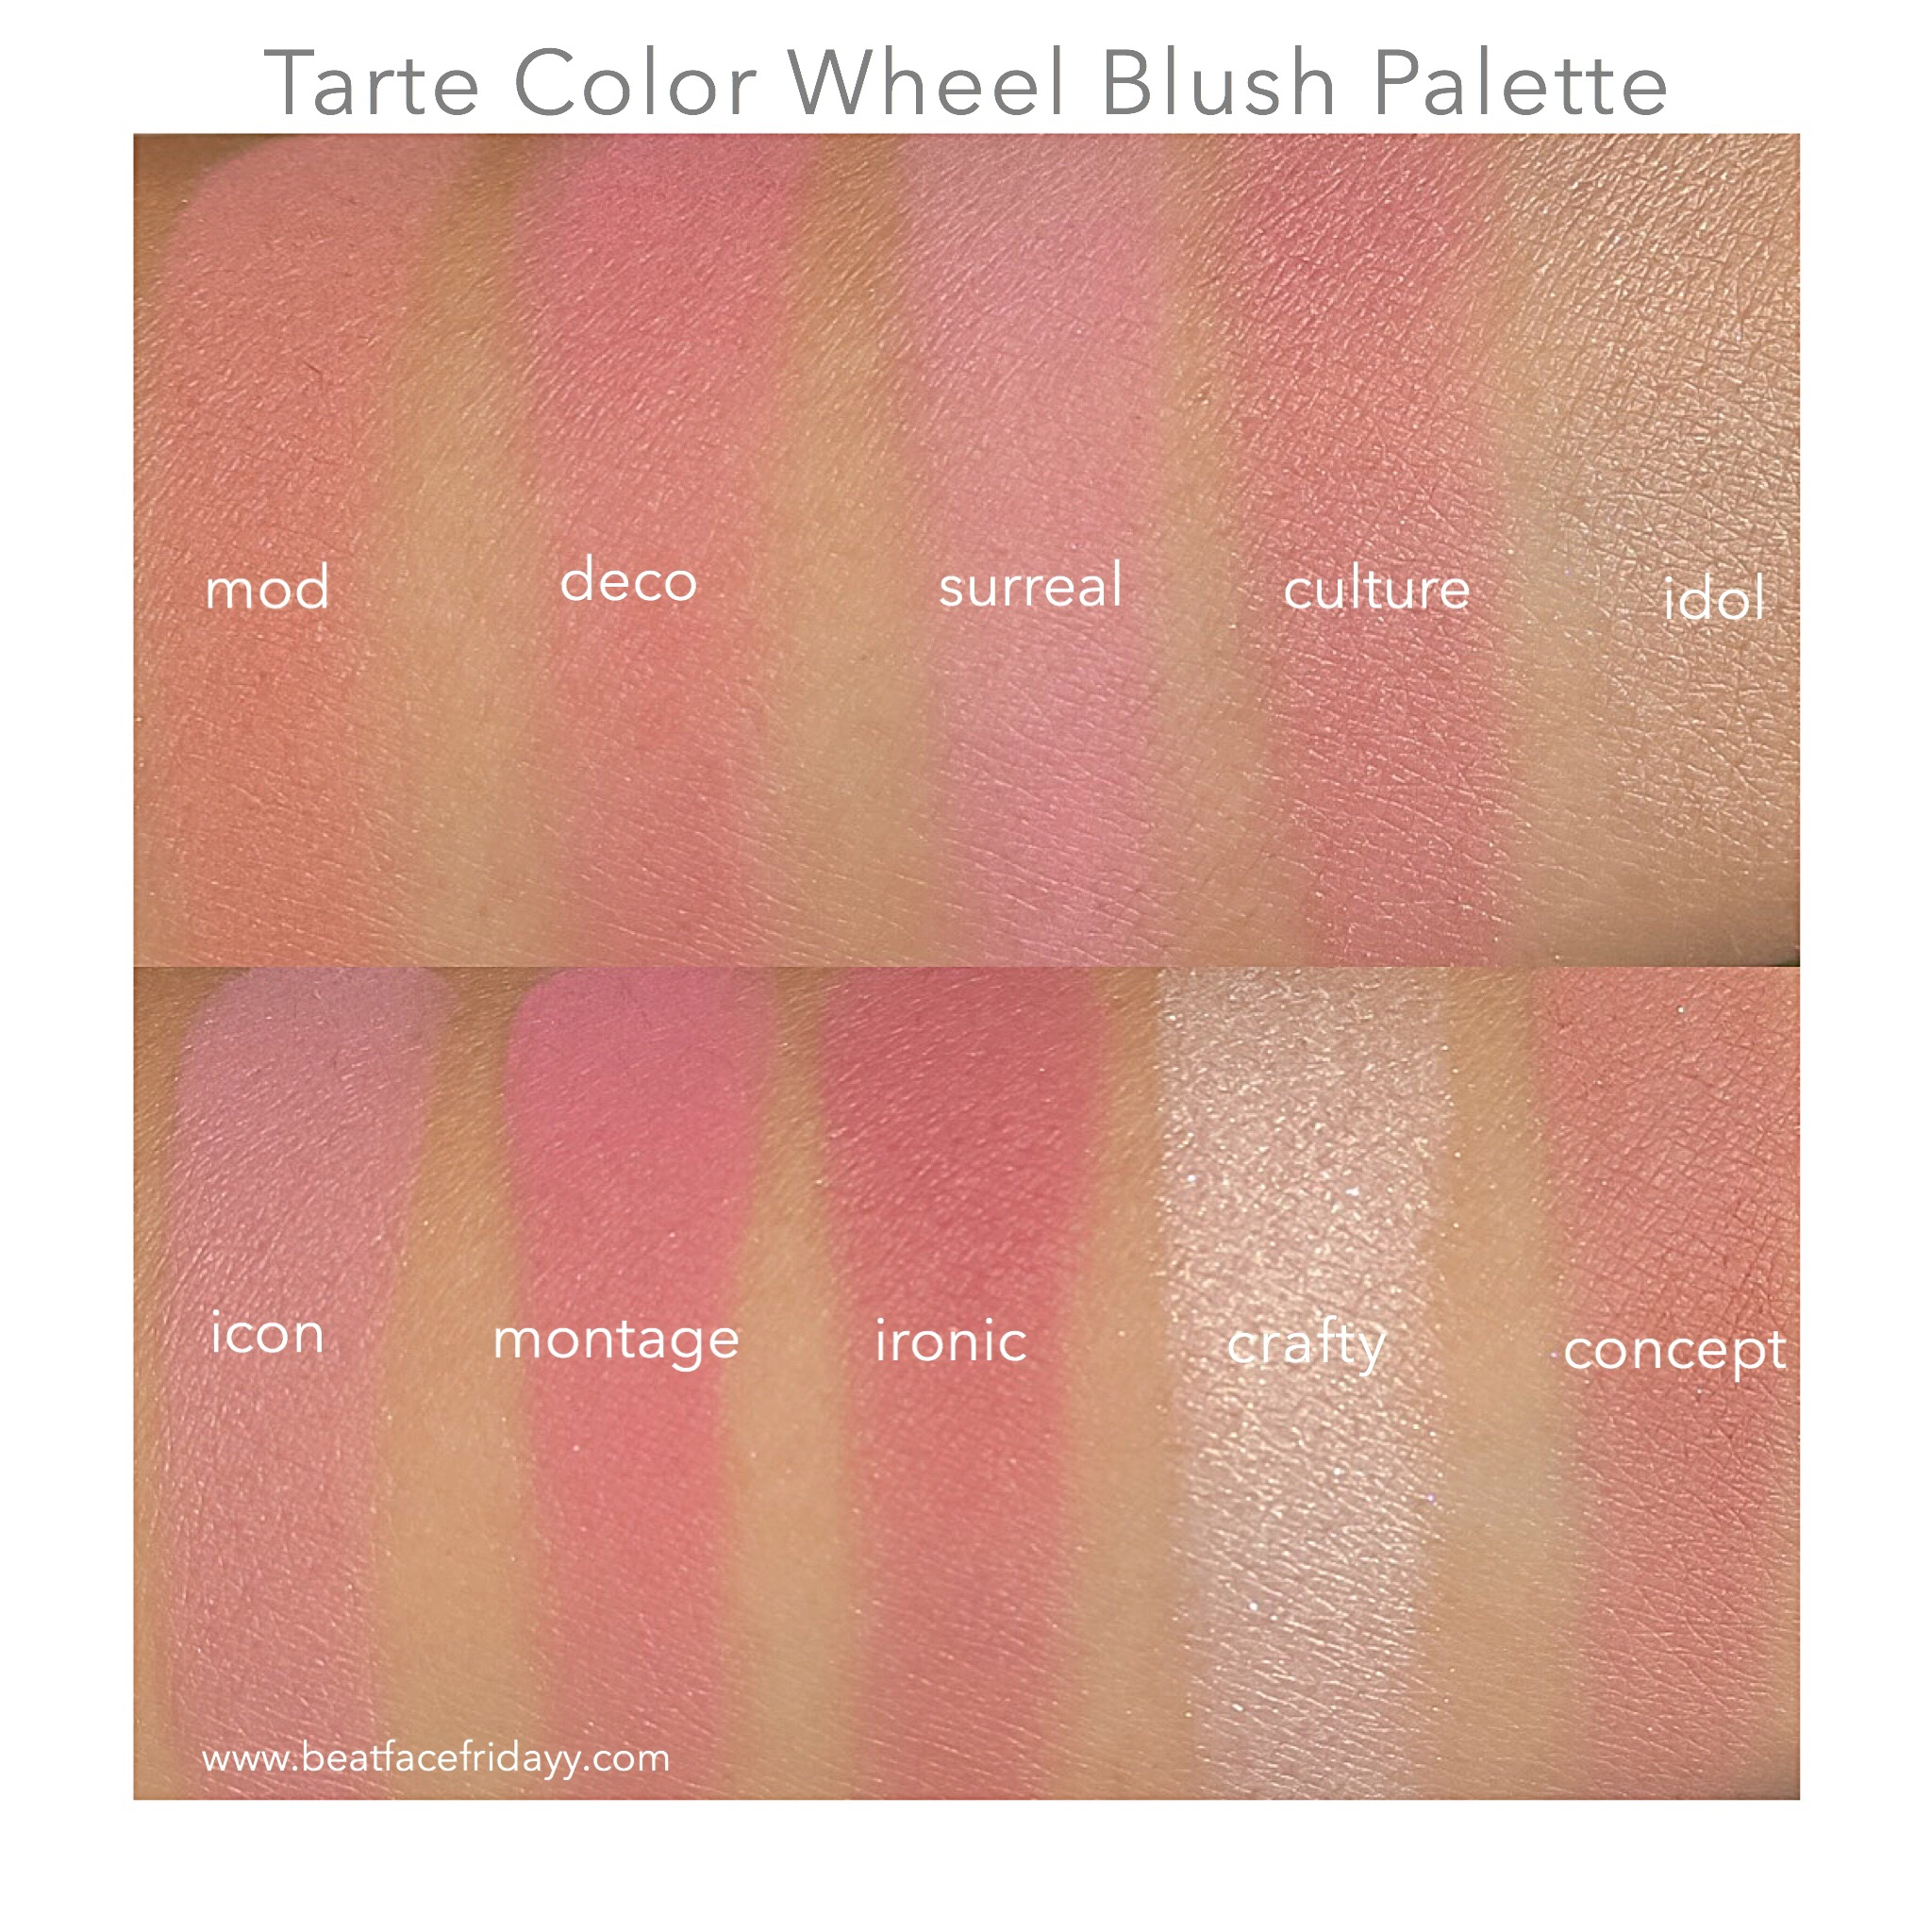 Tarte stunner vs tarte stunner dupe comparison - Tarte Cosmetics Color Wheel Review And Swatch Tarte Amazonian Clay Blush Palette Color Wheel Swatches Beatfacefridayy